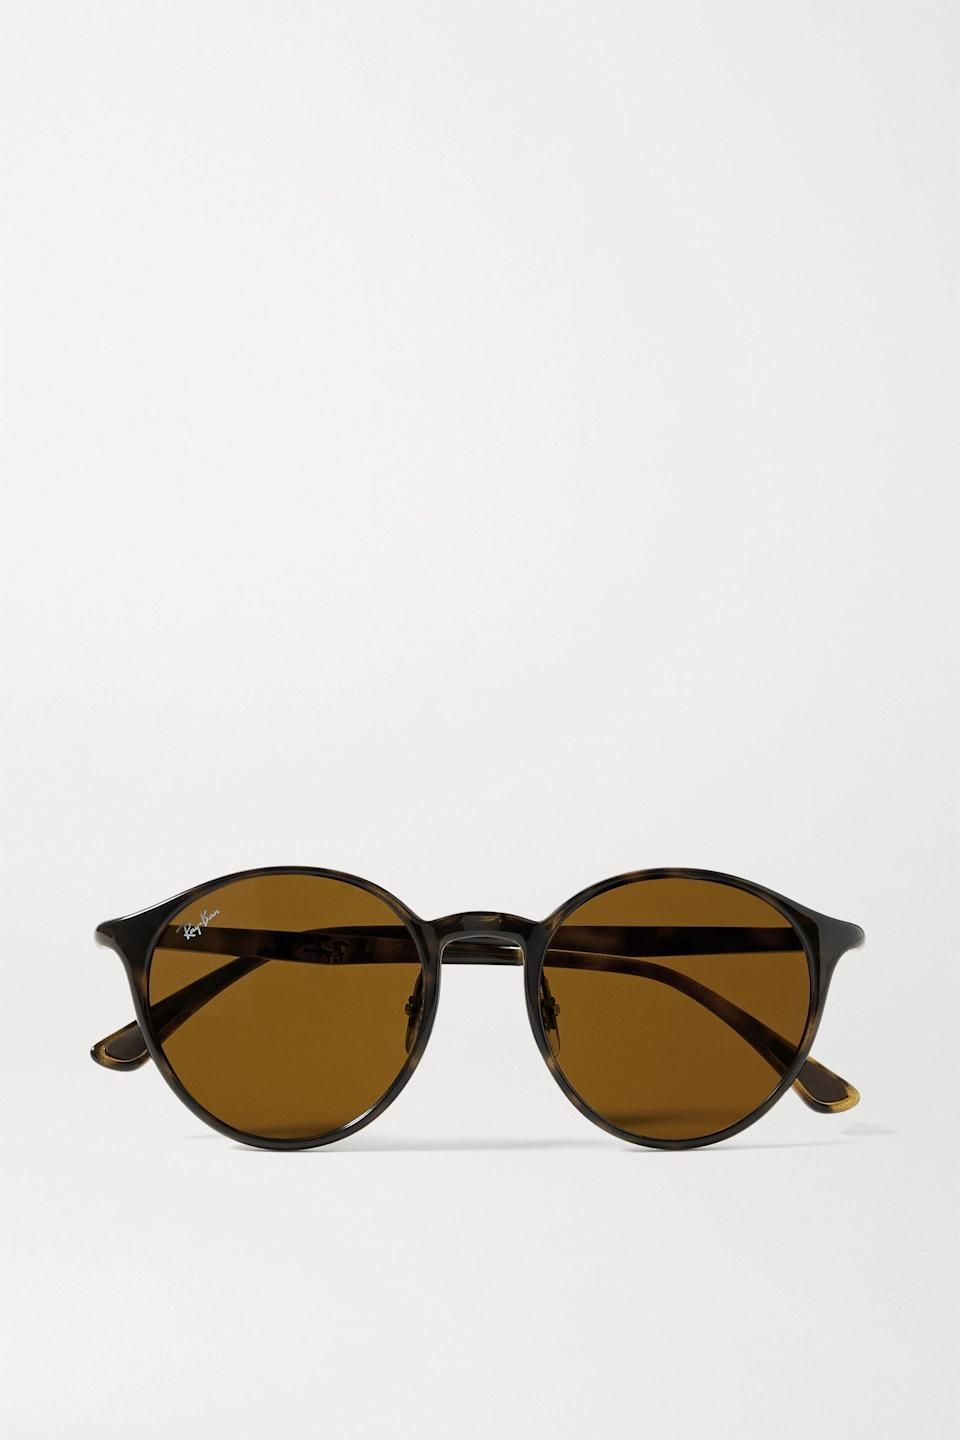 """<p><strong>Ray-Ban</strong></p><p>net-a-porter.com</p><p><a href=""""https://go.redirectingat.com?id=74968X1596630&url=https%3A%2F%2Fwww.net-a-porter.com%2Fen-us%2Fshop%2Fproduct%2Fray-ban%2Faccessories%2Fround-frame%2Fround-frame-tortoiseshell-acetate-sunglasses%2F2009603006213&sref=https%3A%2F%2Fwww.harpersbazaar.com%2Ffashion%2Ftrends%2Fg36597917%2Fnet-a-porter-sale-spring-2021%2F"""" rel=""""nofollow noopener"""" target=""""_blank"""" data-ylk=""""slk:Shop Now"""" class=""""link rapid-noclick-resp"""">Shop Now</a></p><p><strong><del>$165</del> $83 (50% off)</strong></p>"""